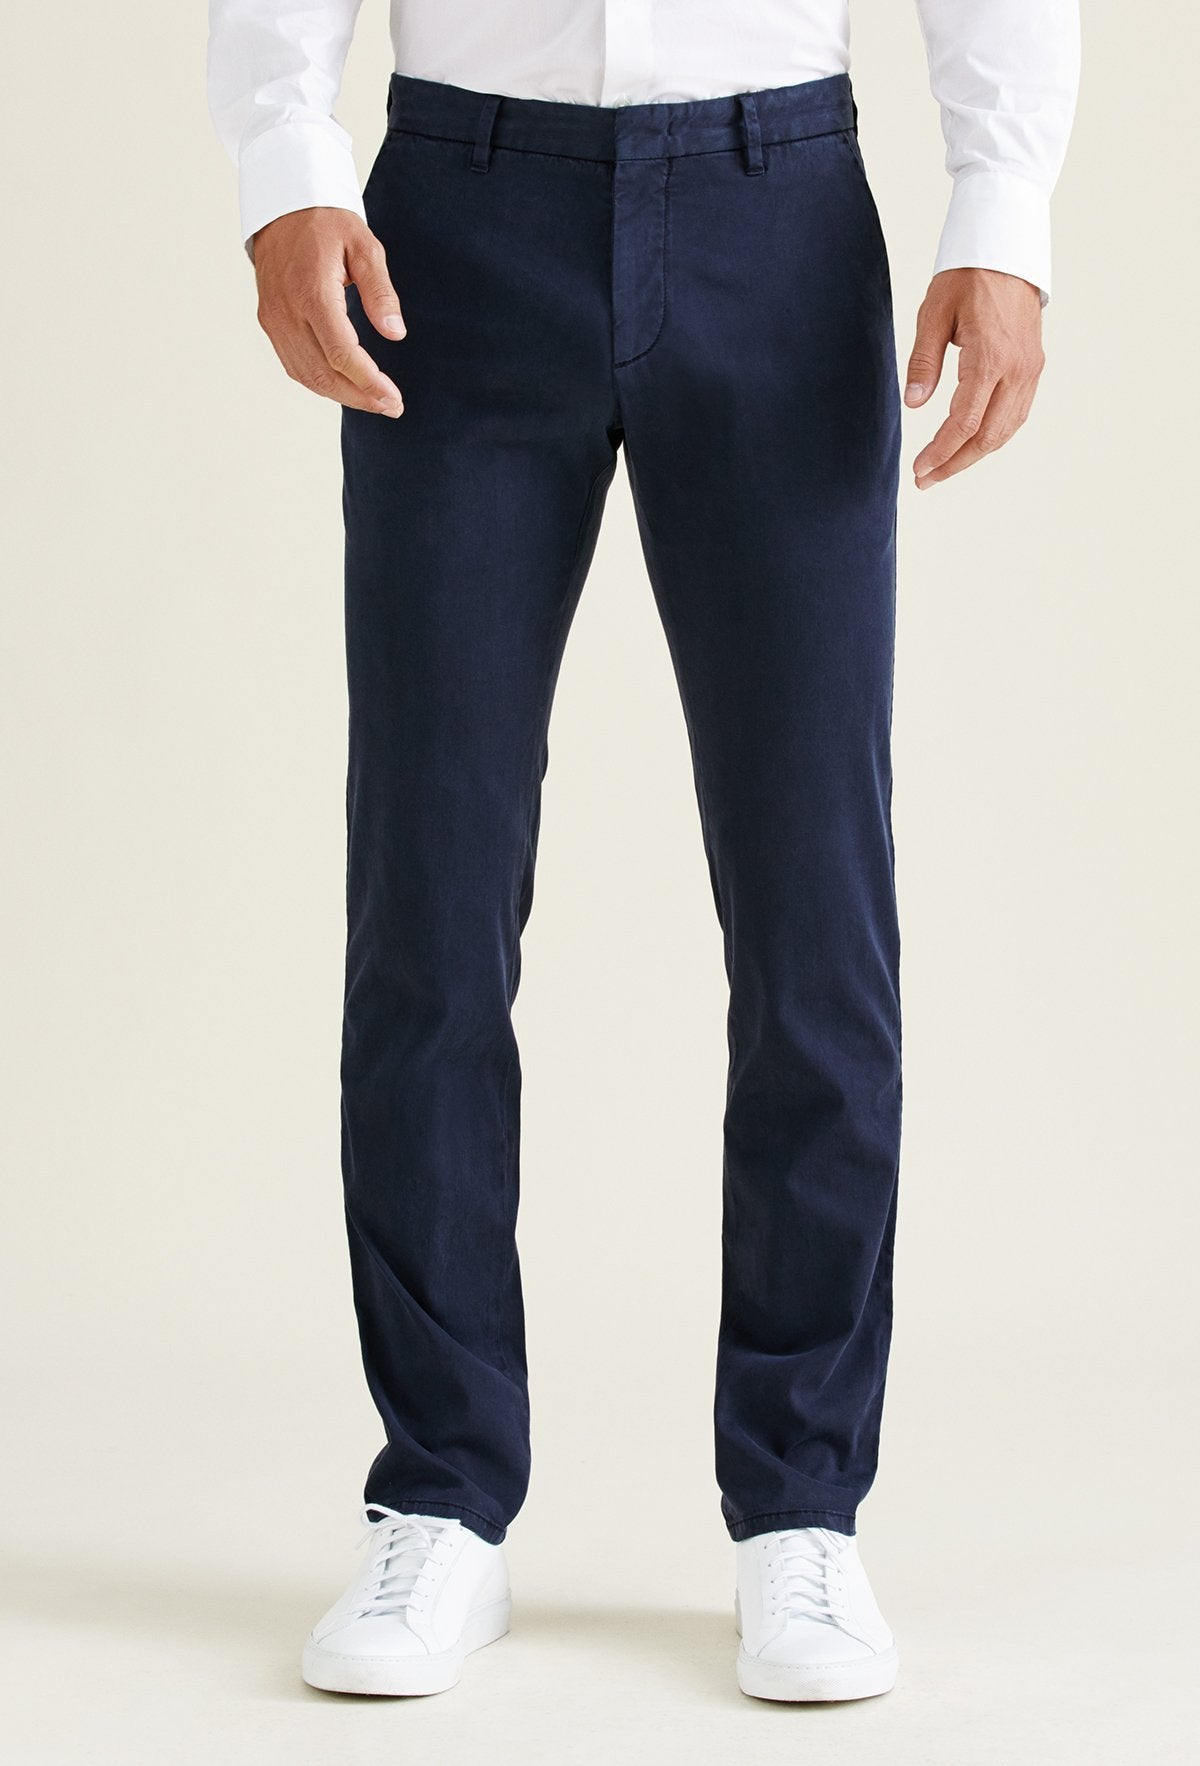 men's navy blue chino pants